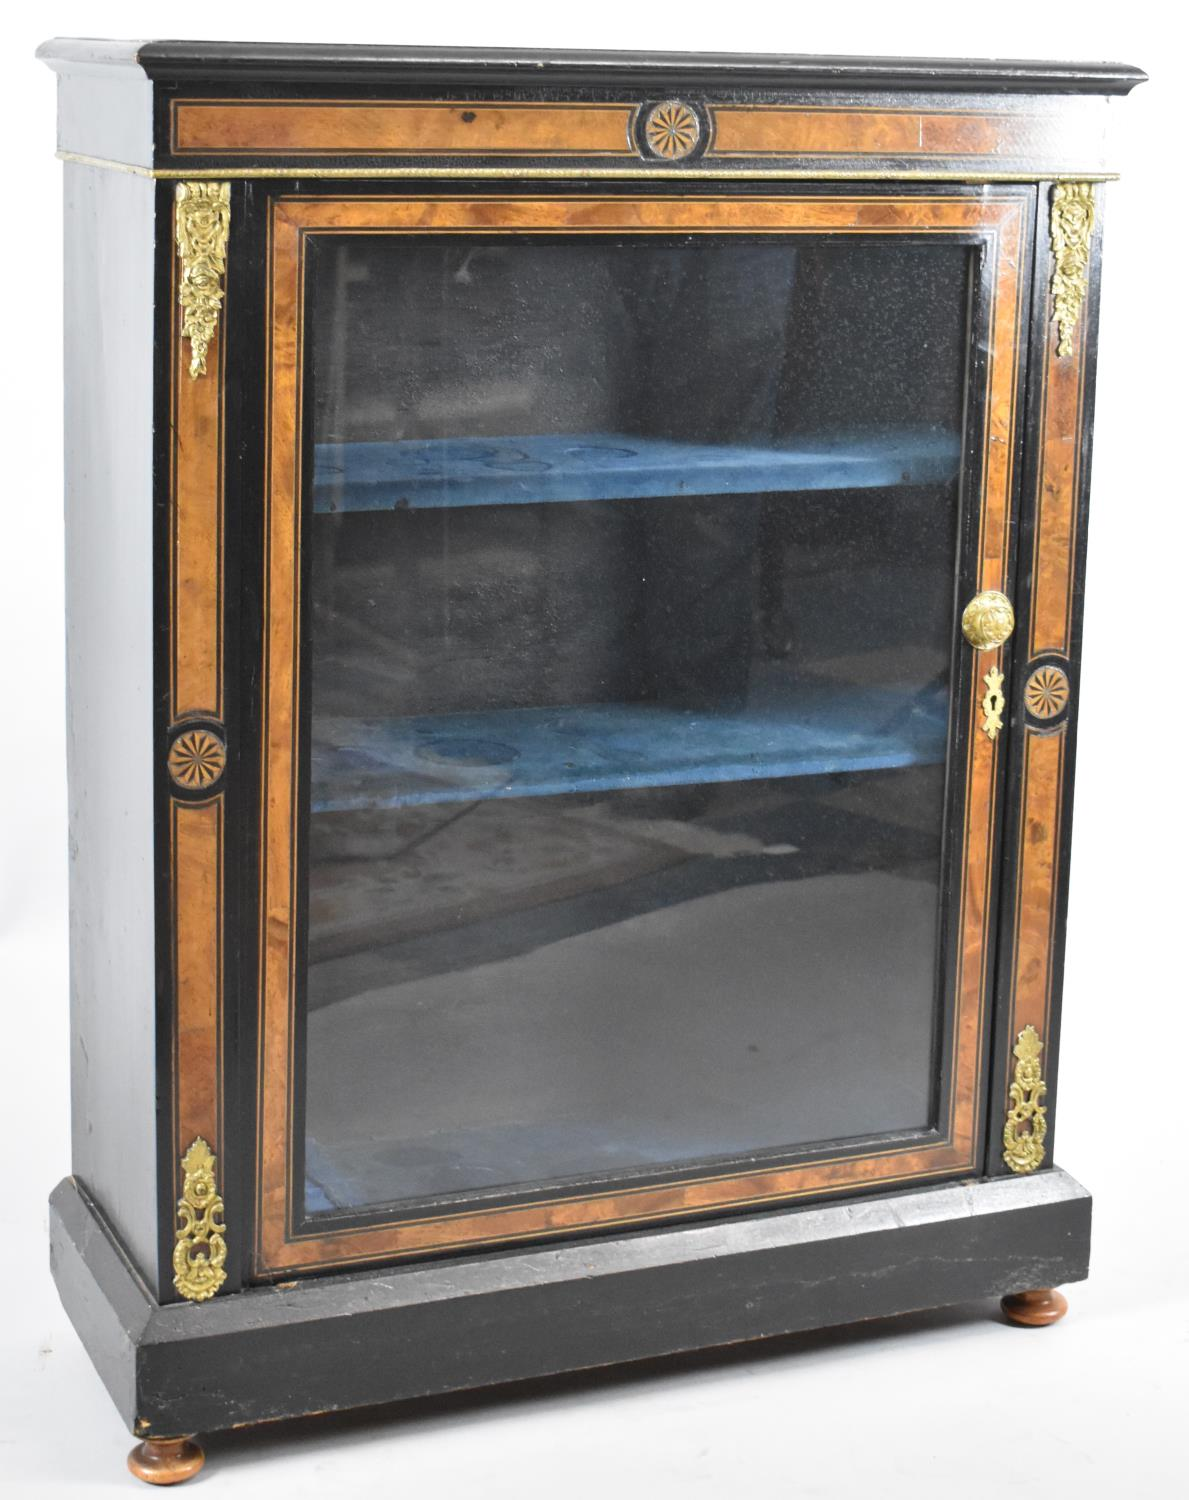 A 19th Century Ormolu Mounted Ebonised Inlaid Credenza with Glazed Door to Three Shelved Interior,